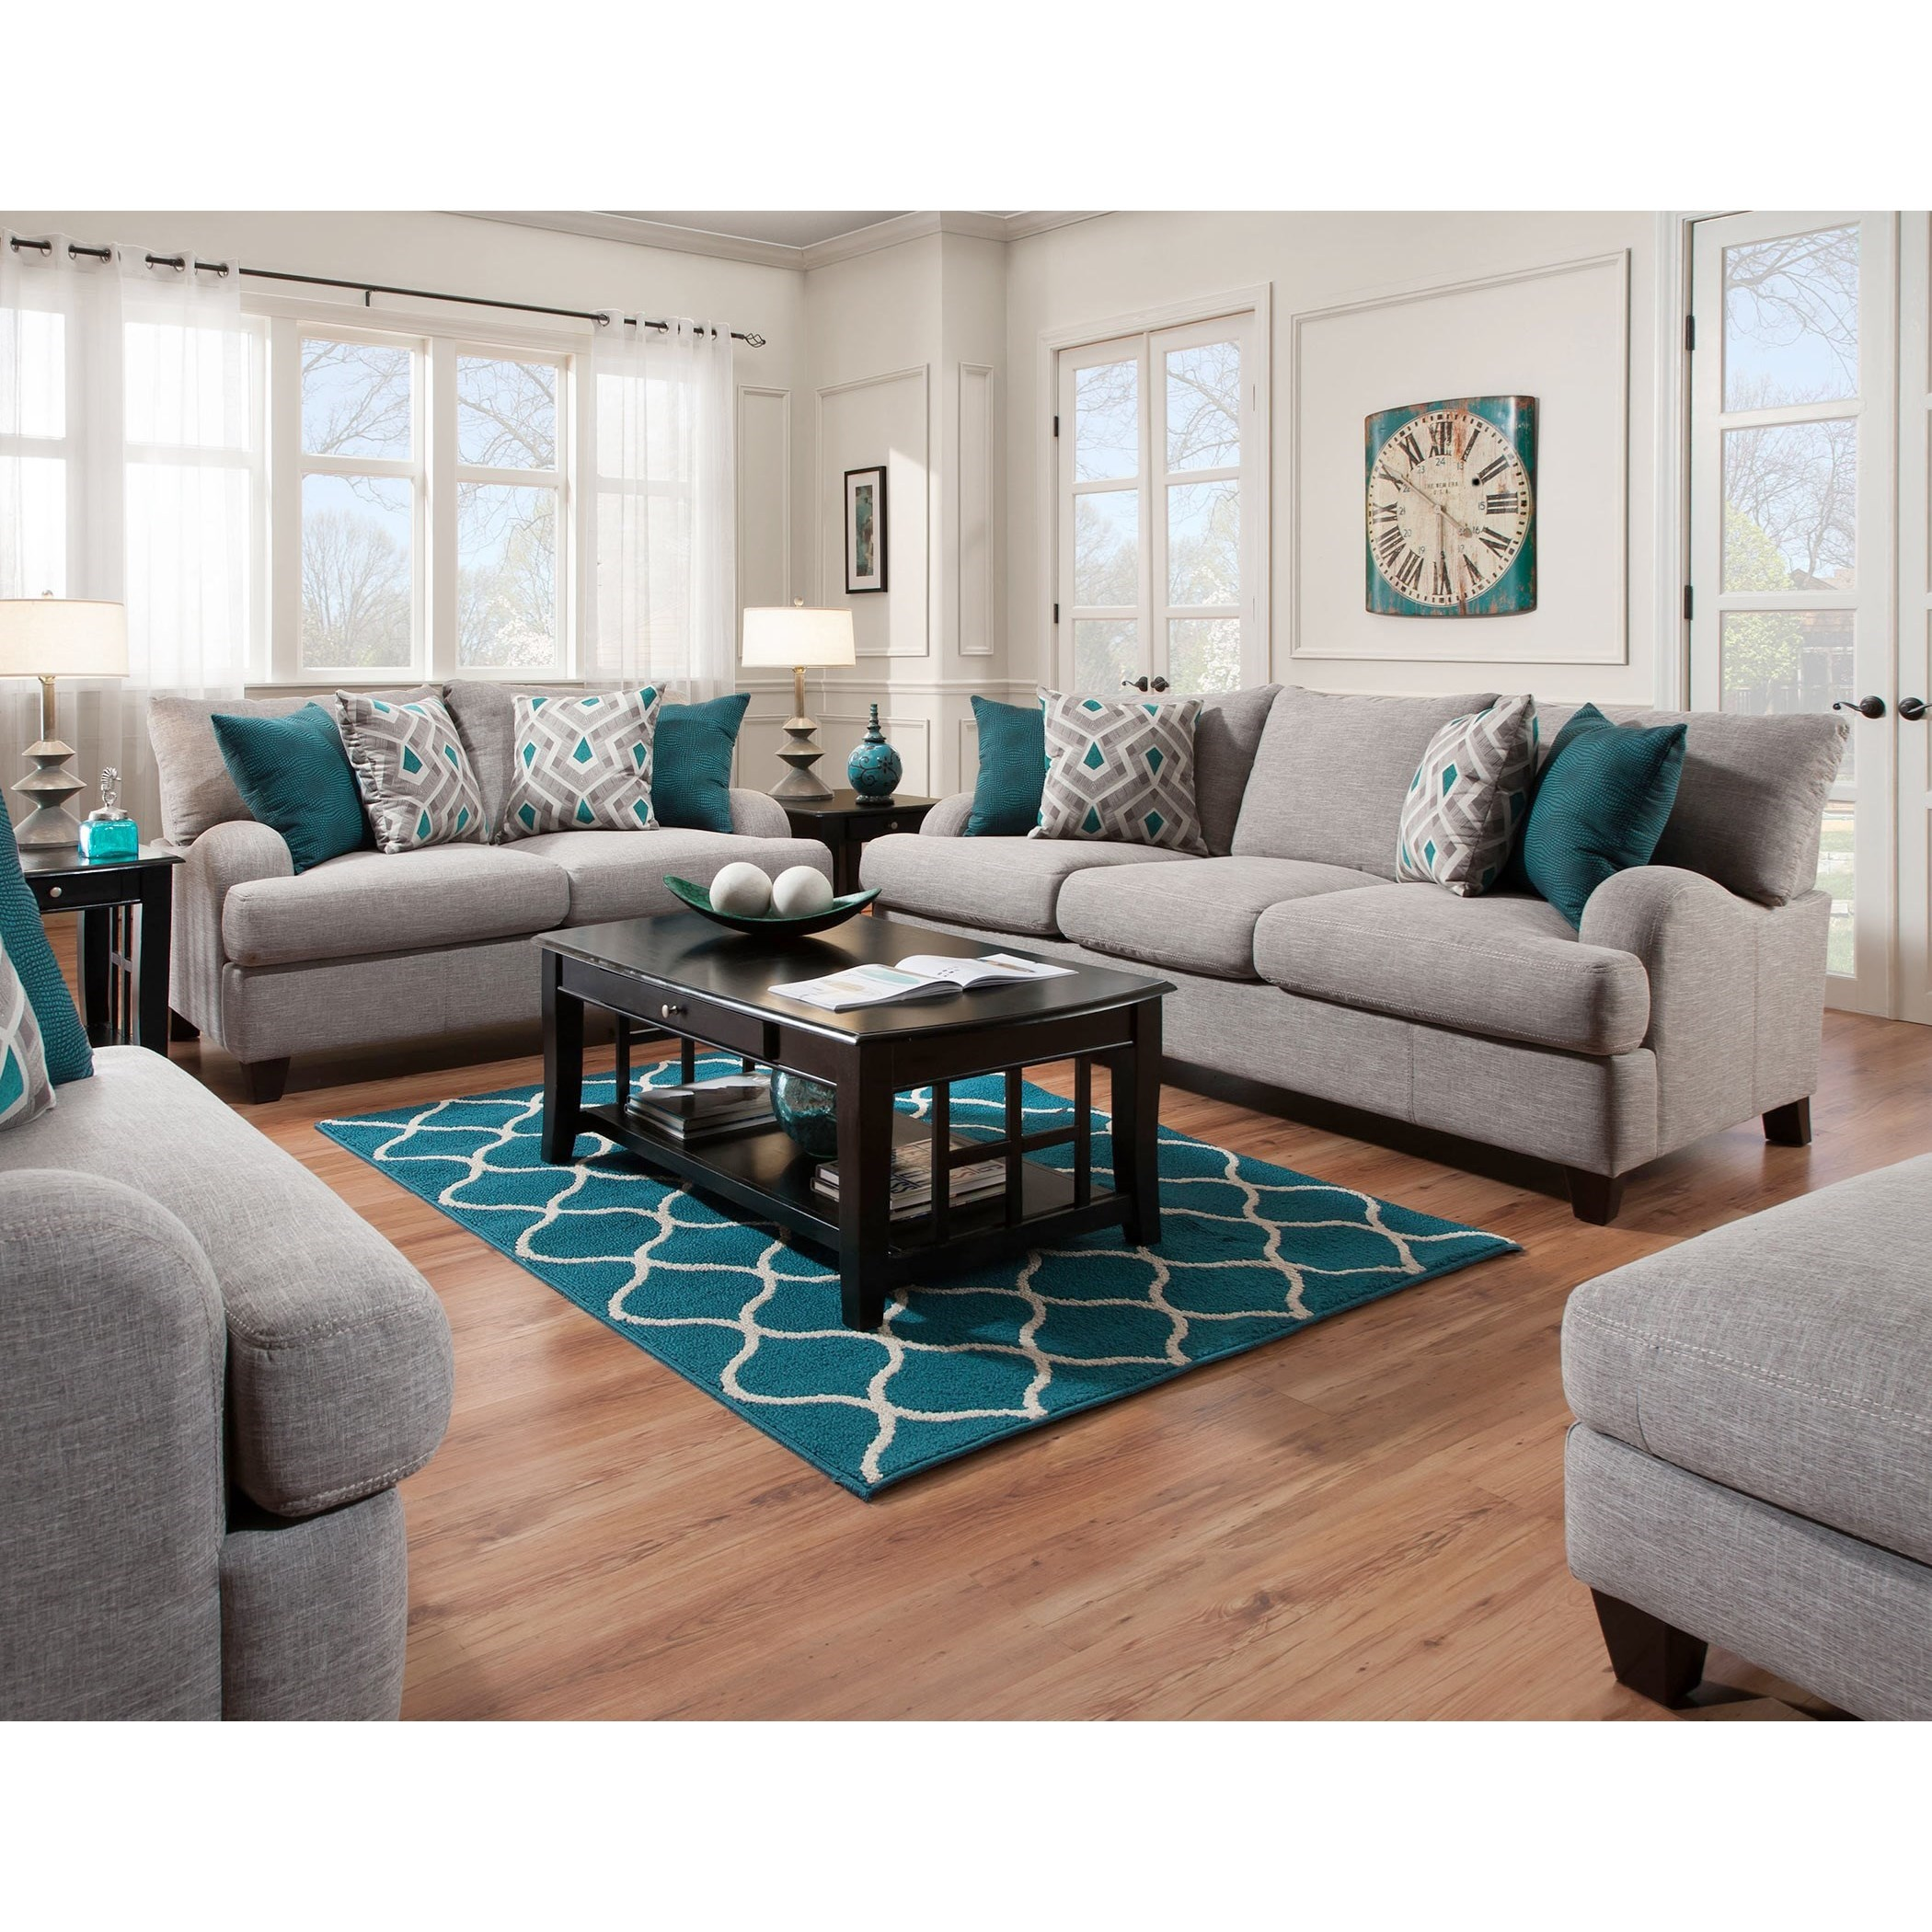 Paradigm Living Room Group by Franklin at Furniture Superstore - Rochester, MN